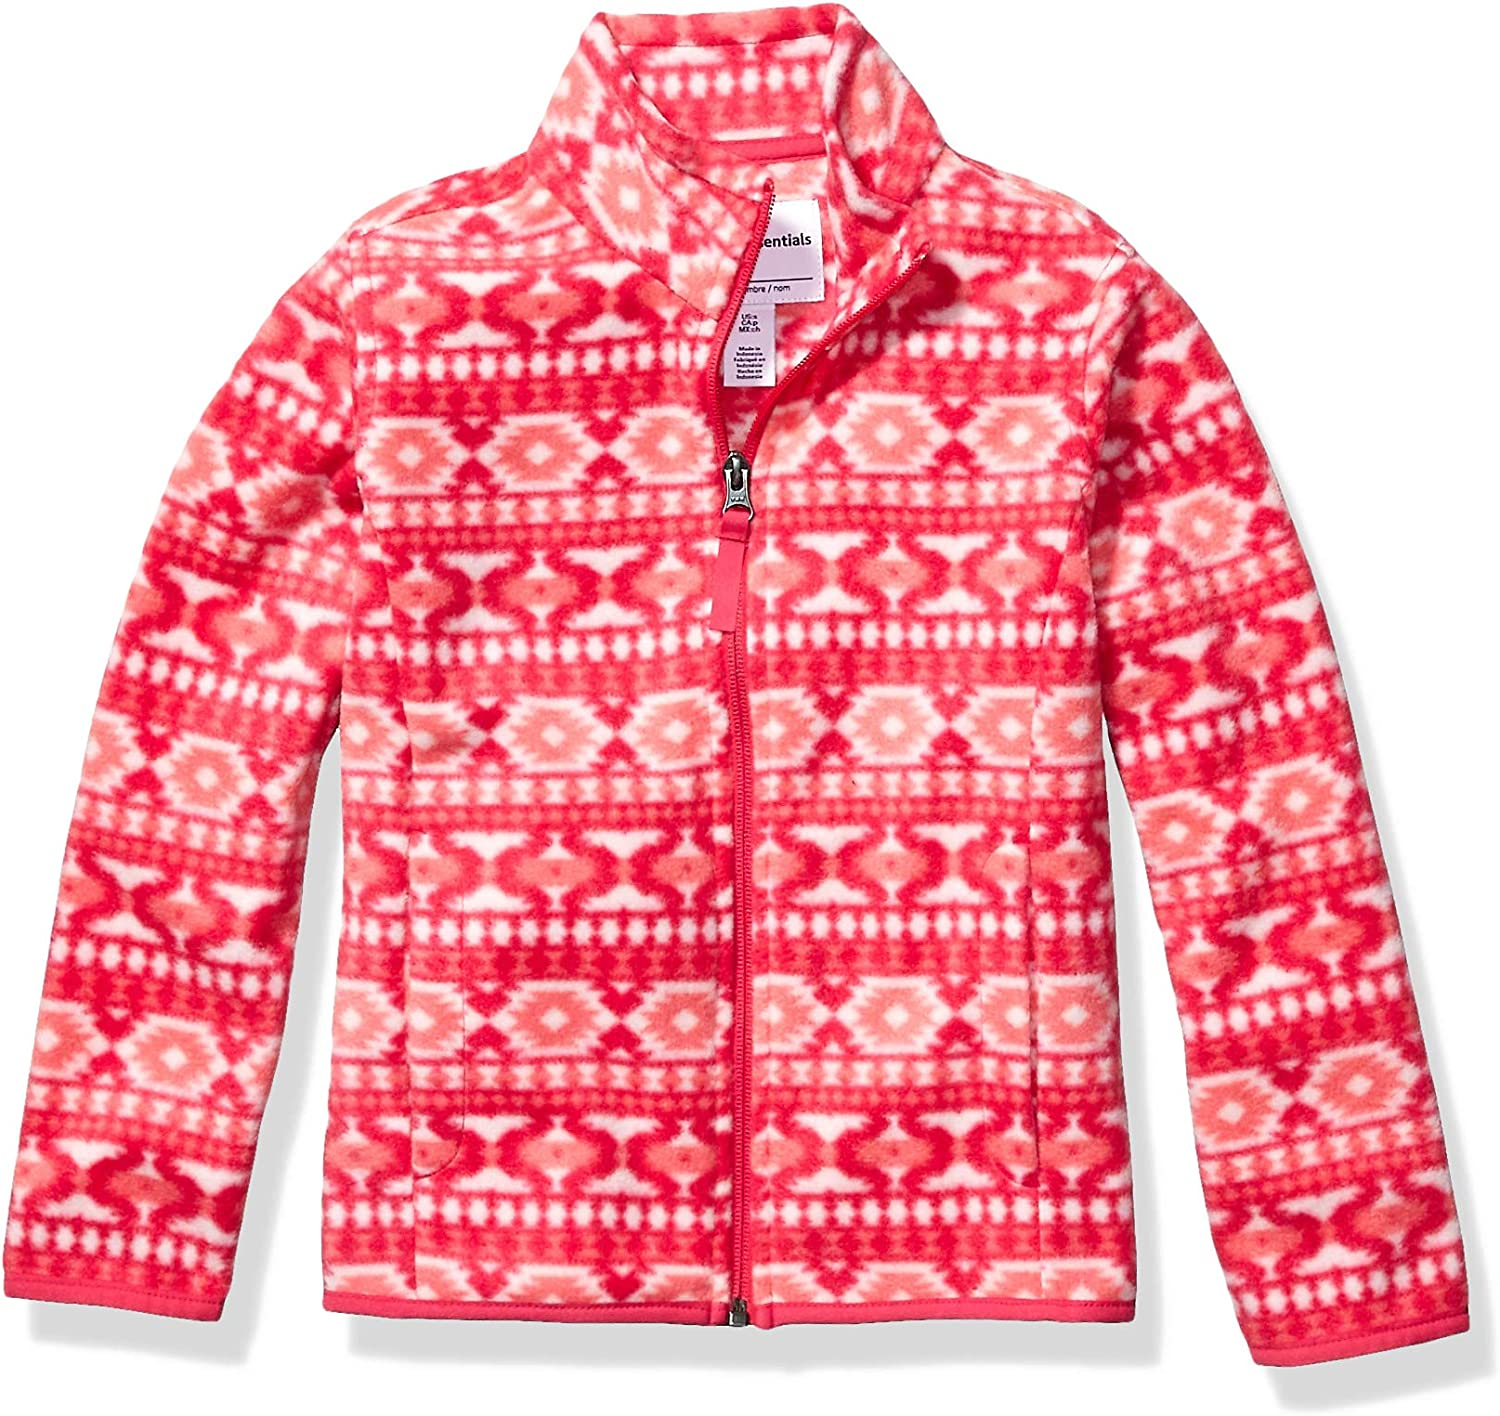 Essentials Girls Full-Zip Polar Fleece Jacket